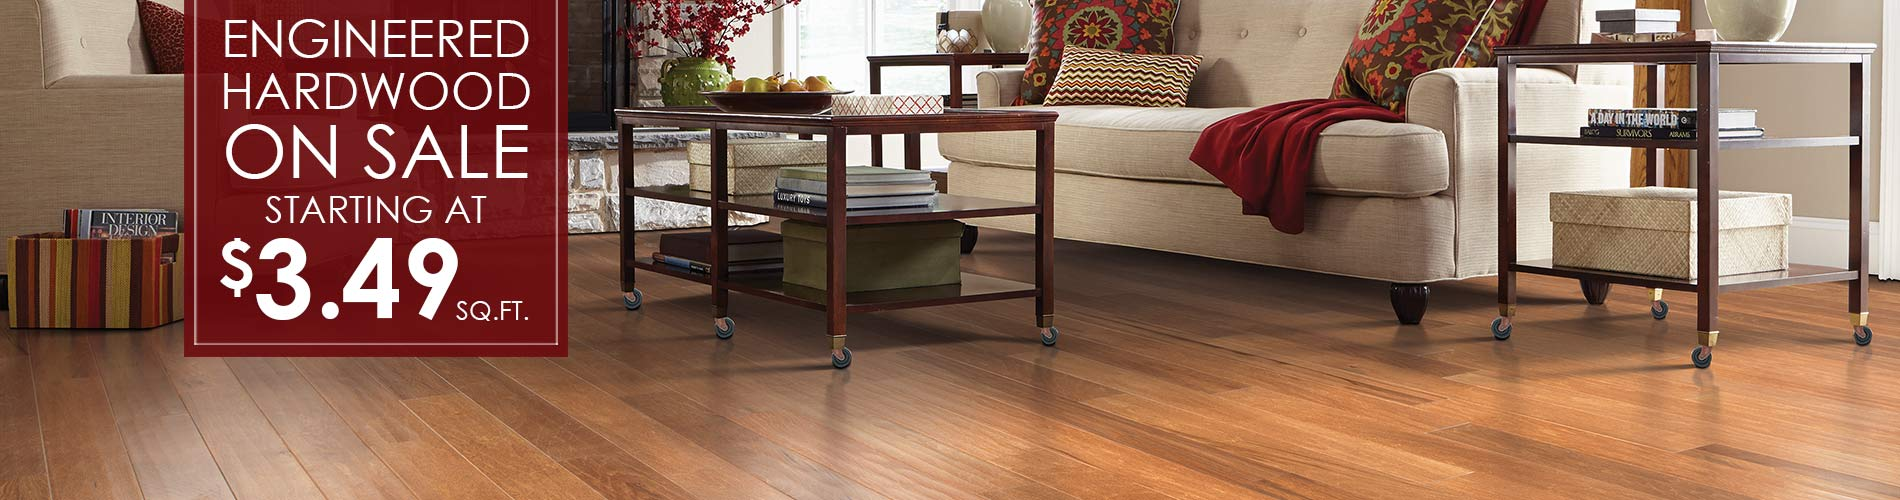 Engineered hardwood on sale starting at $3.49 sq.ft.